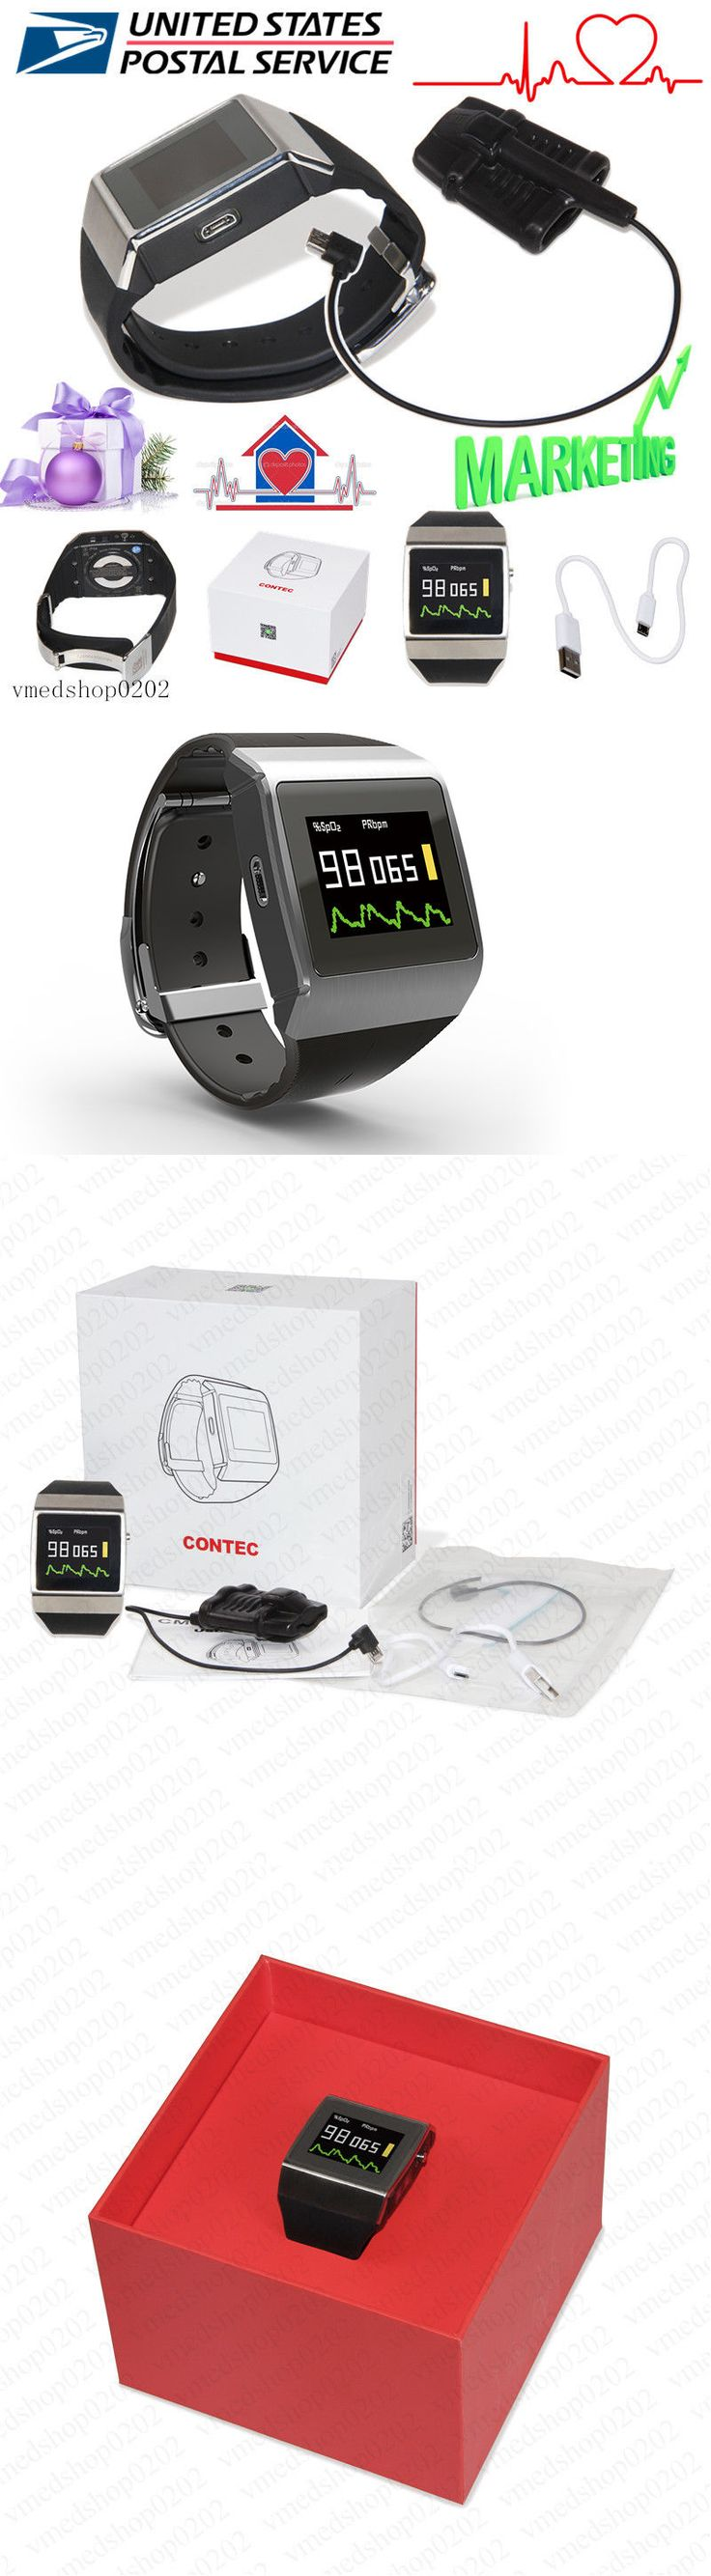 Heart Rate Monitors 15277: Usa Cms50k Pedometer Step Pulse Watch Wrist Spo2 Ecg Heart Rate Monitor,Wireless -> BUY IT NOW ONLY: $149 on eBay!